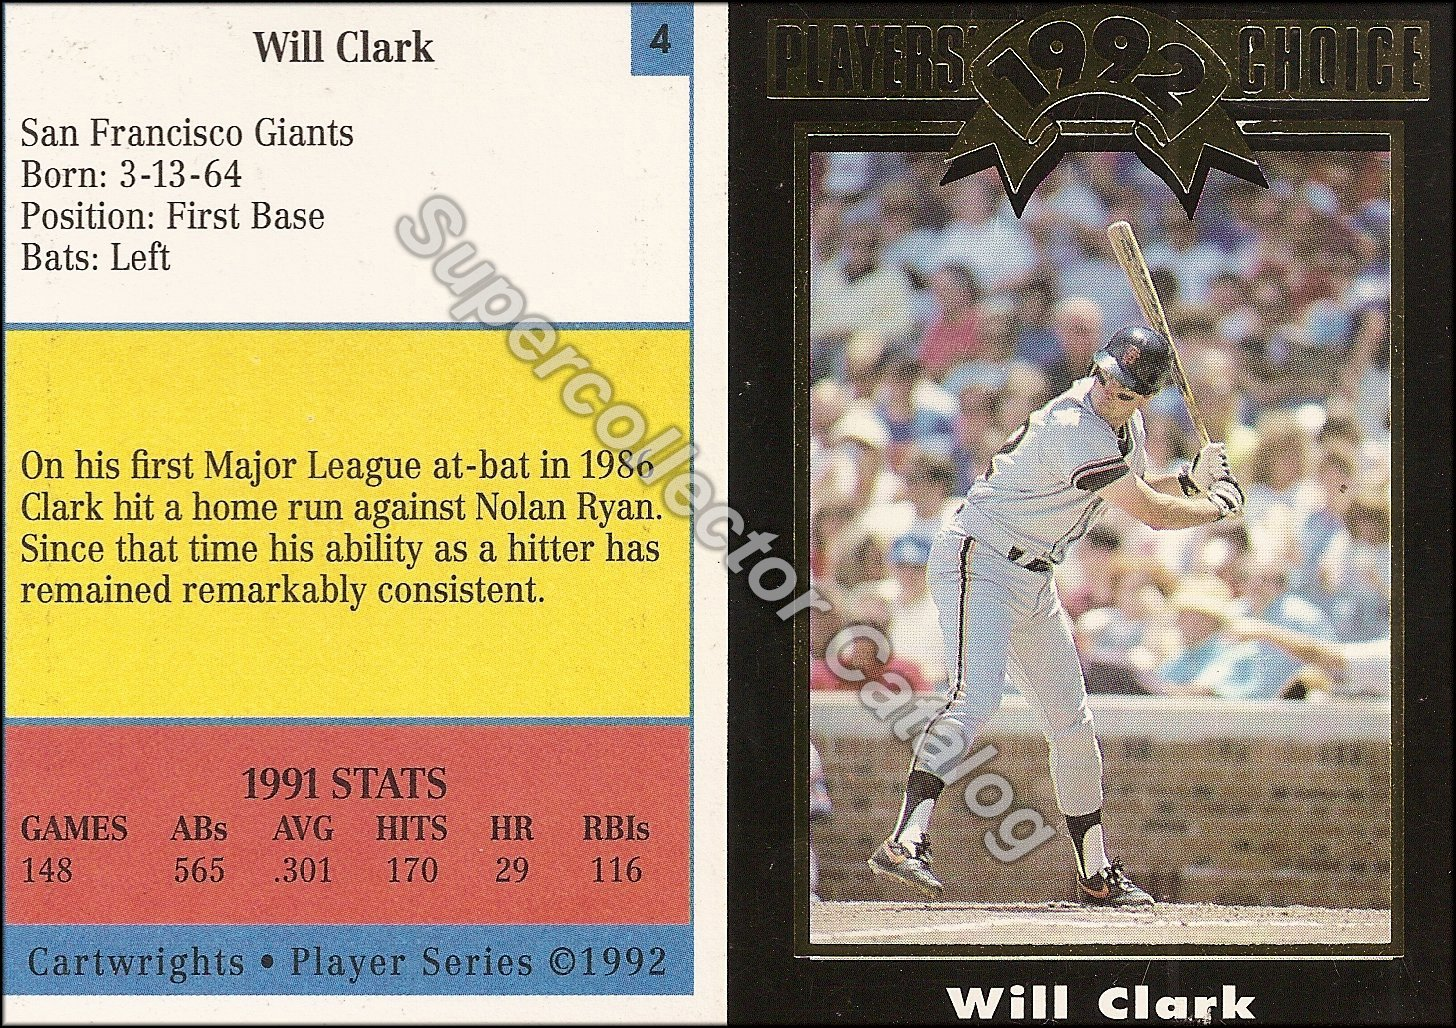 1992 Cartwrights Magazine Insert 'Players Choice Player Series' Black